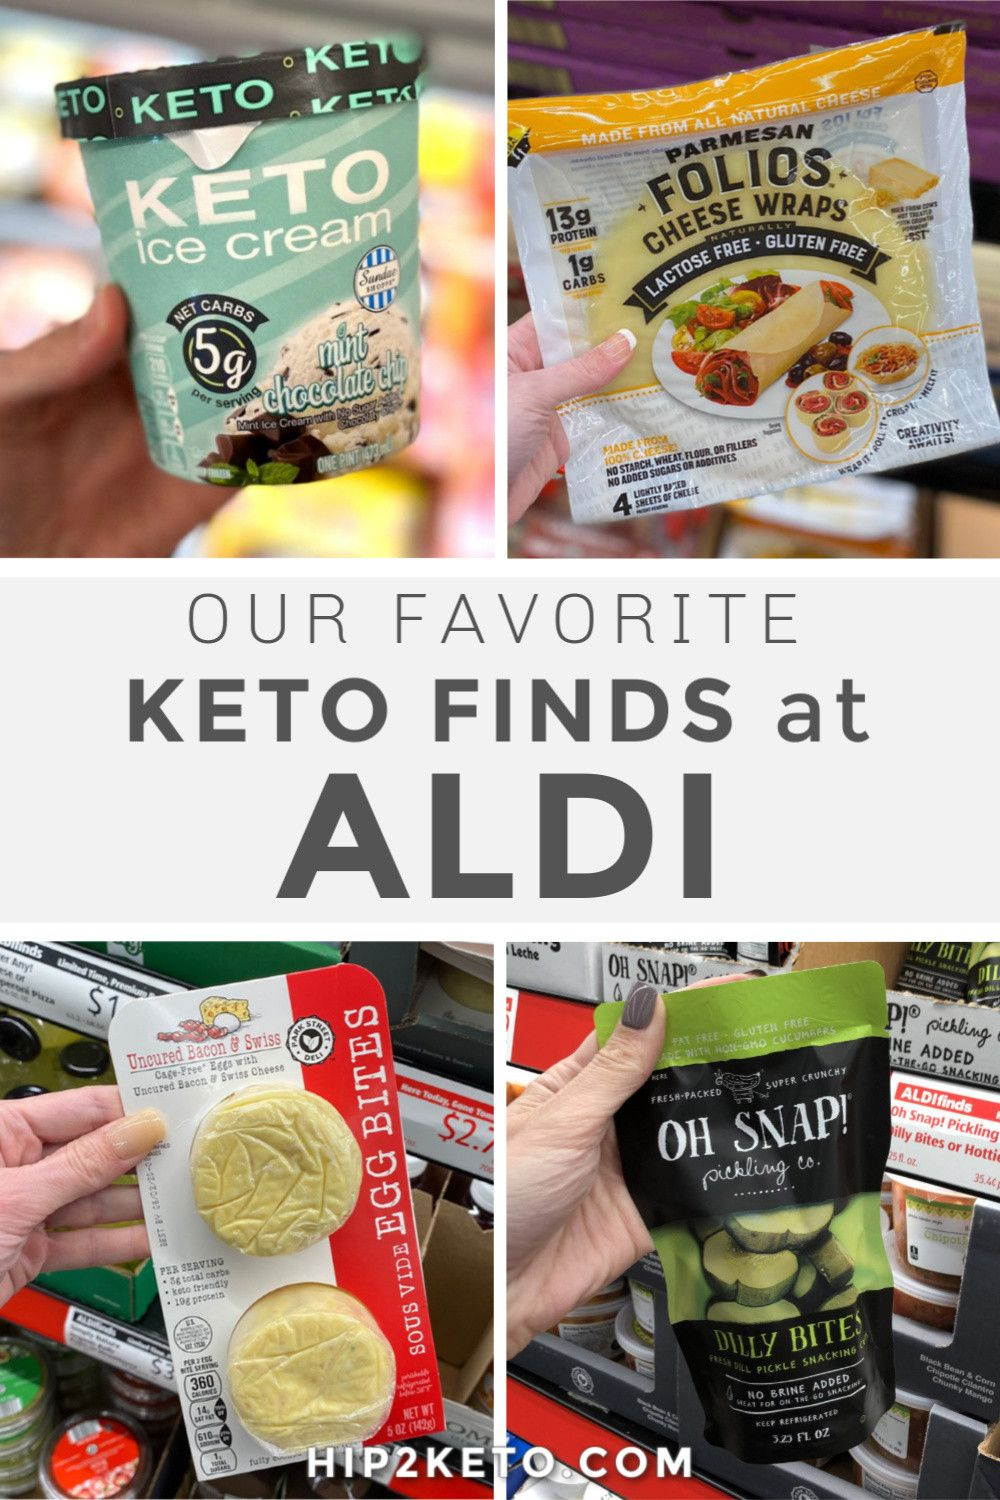 ALDI has been winning me over lately — the convenience of their store layout, their awesome exclusive brands (that are cheaper and sometimes BETTER than name brand products), and the great deals readers and team members come across in the ALDI Finds section. Turns out, they're also a great source for keto shopping! #keto #aldi #grocery